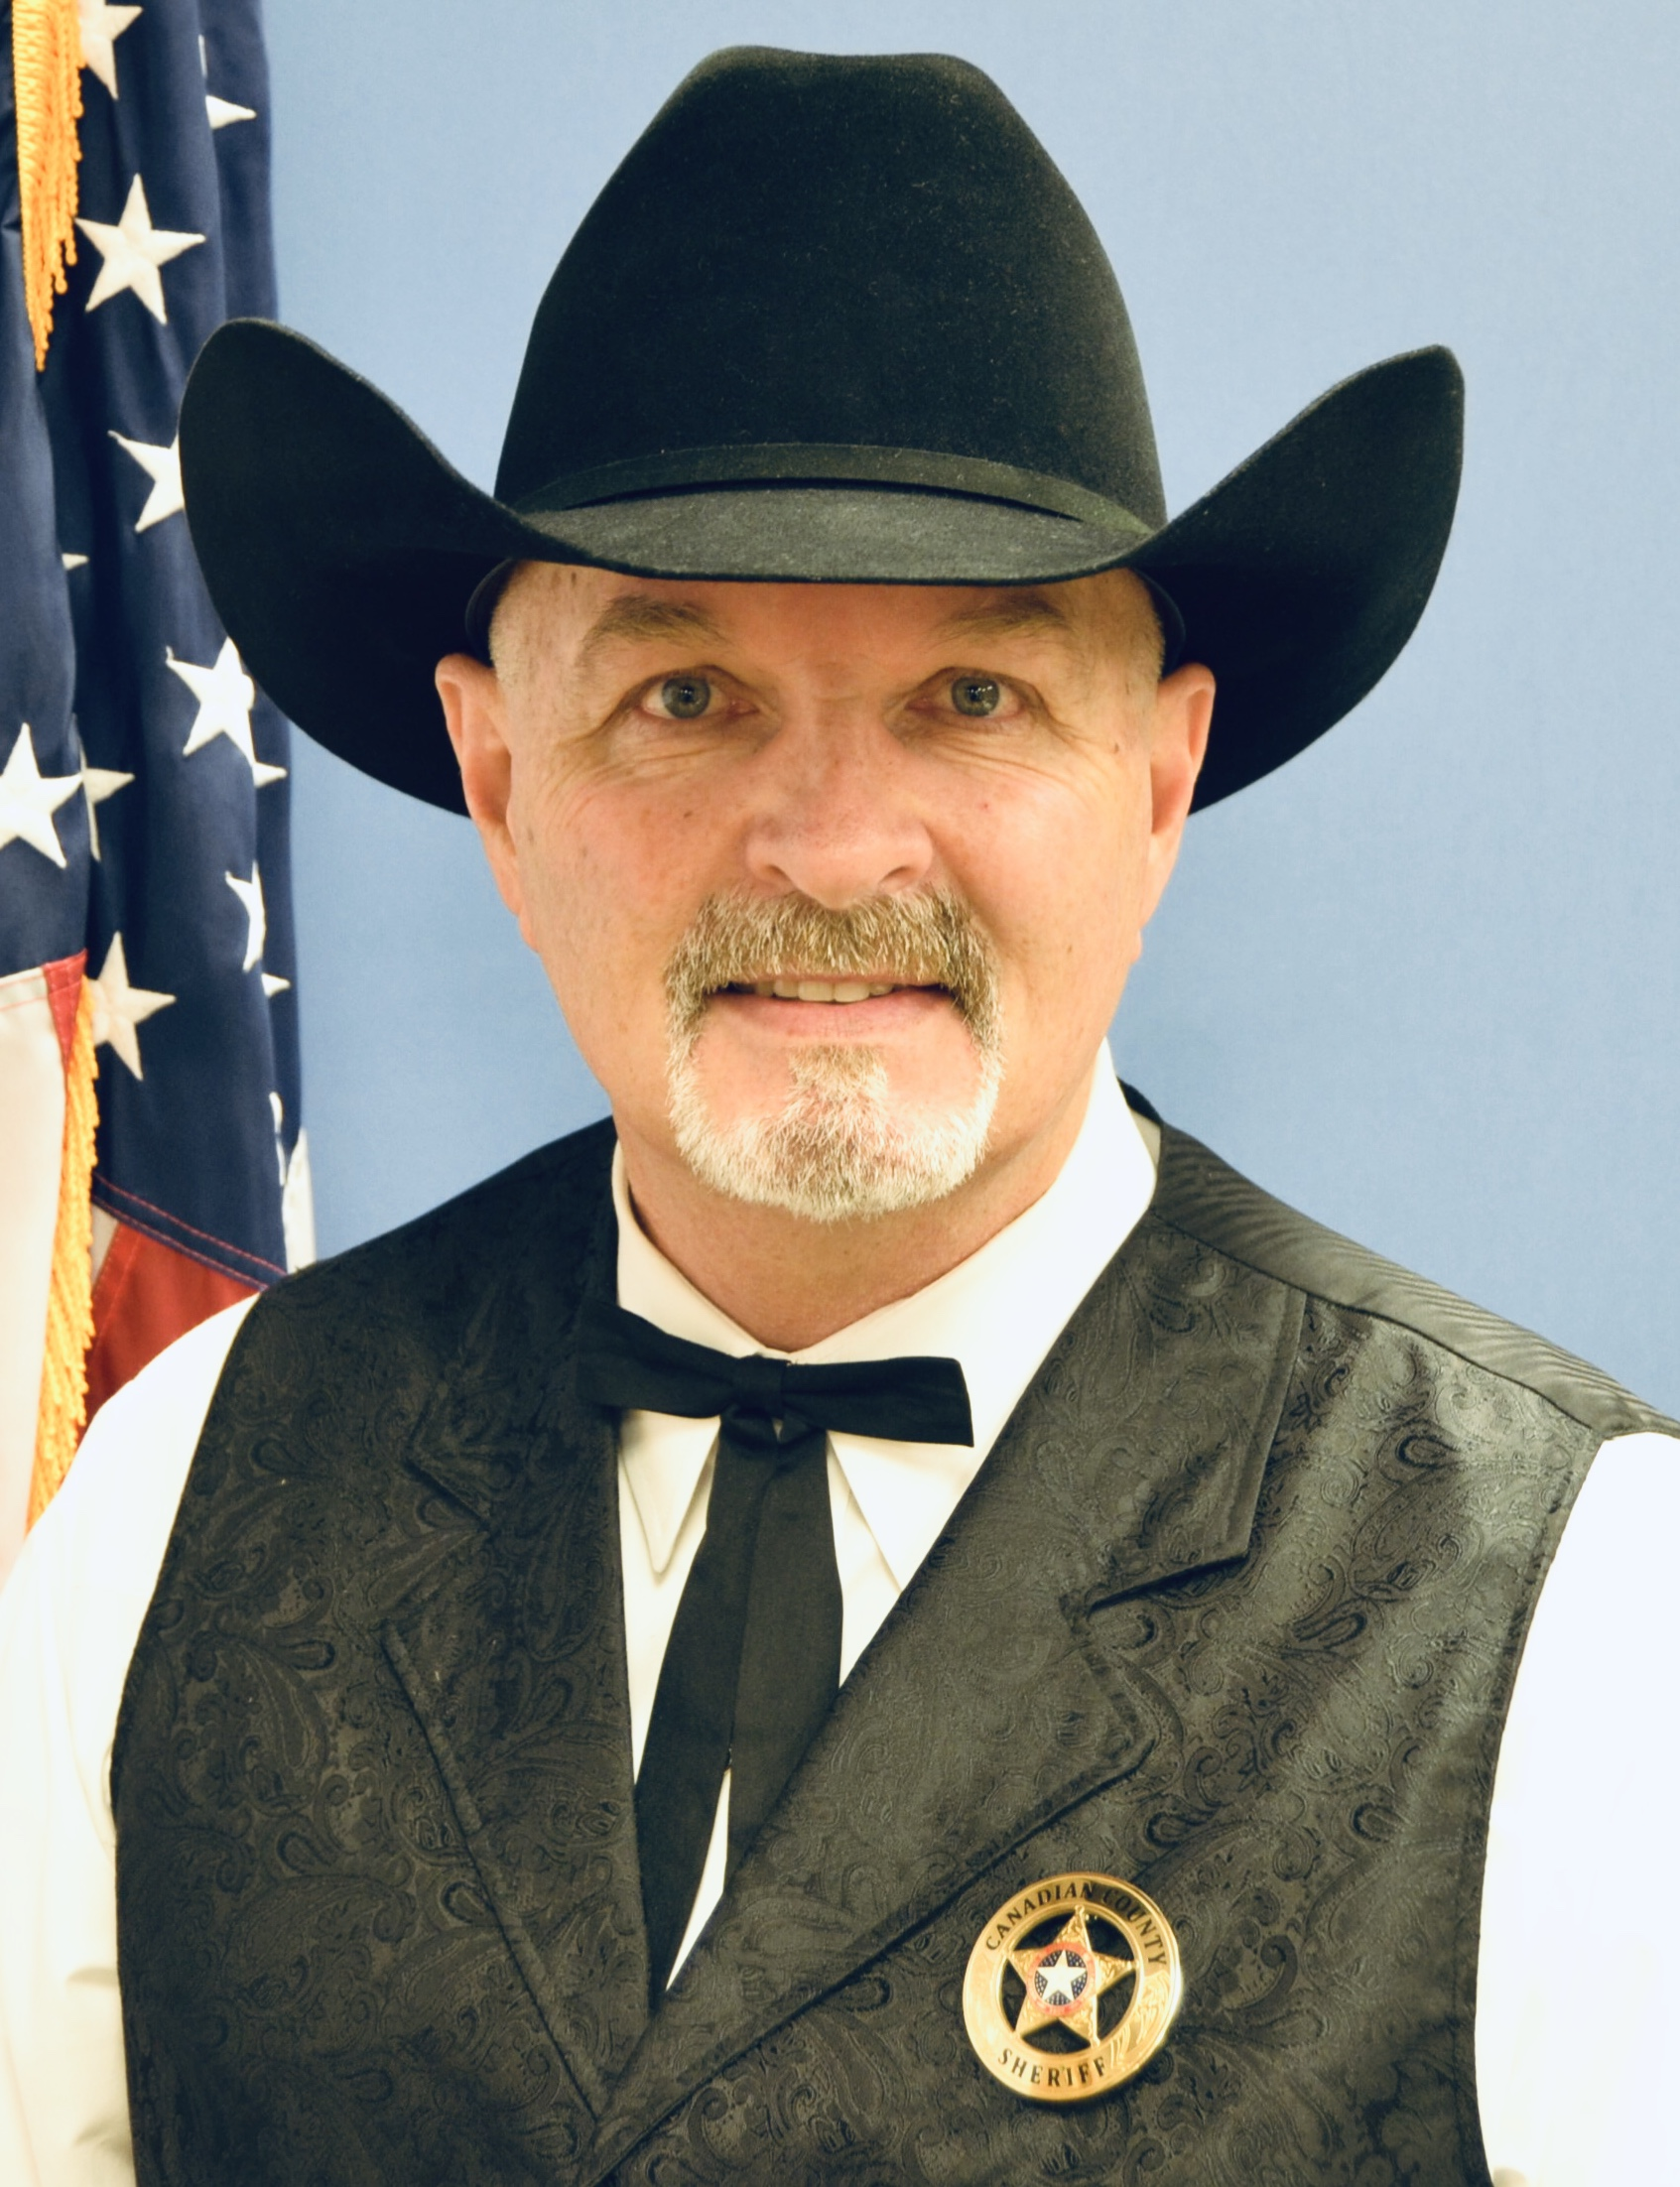 SHERIFF FORMS POSSE